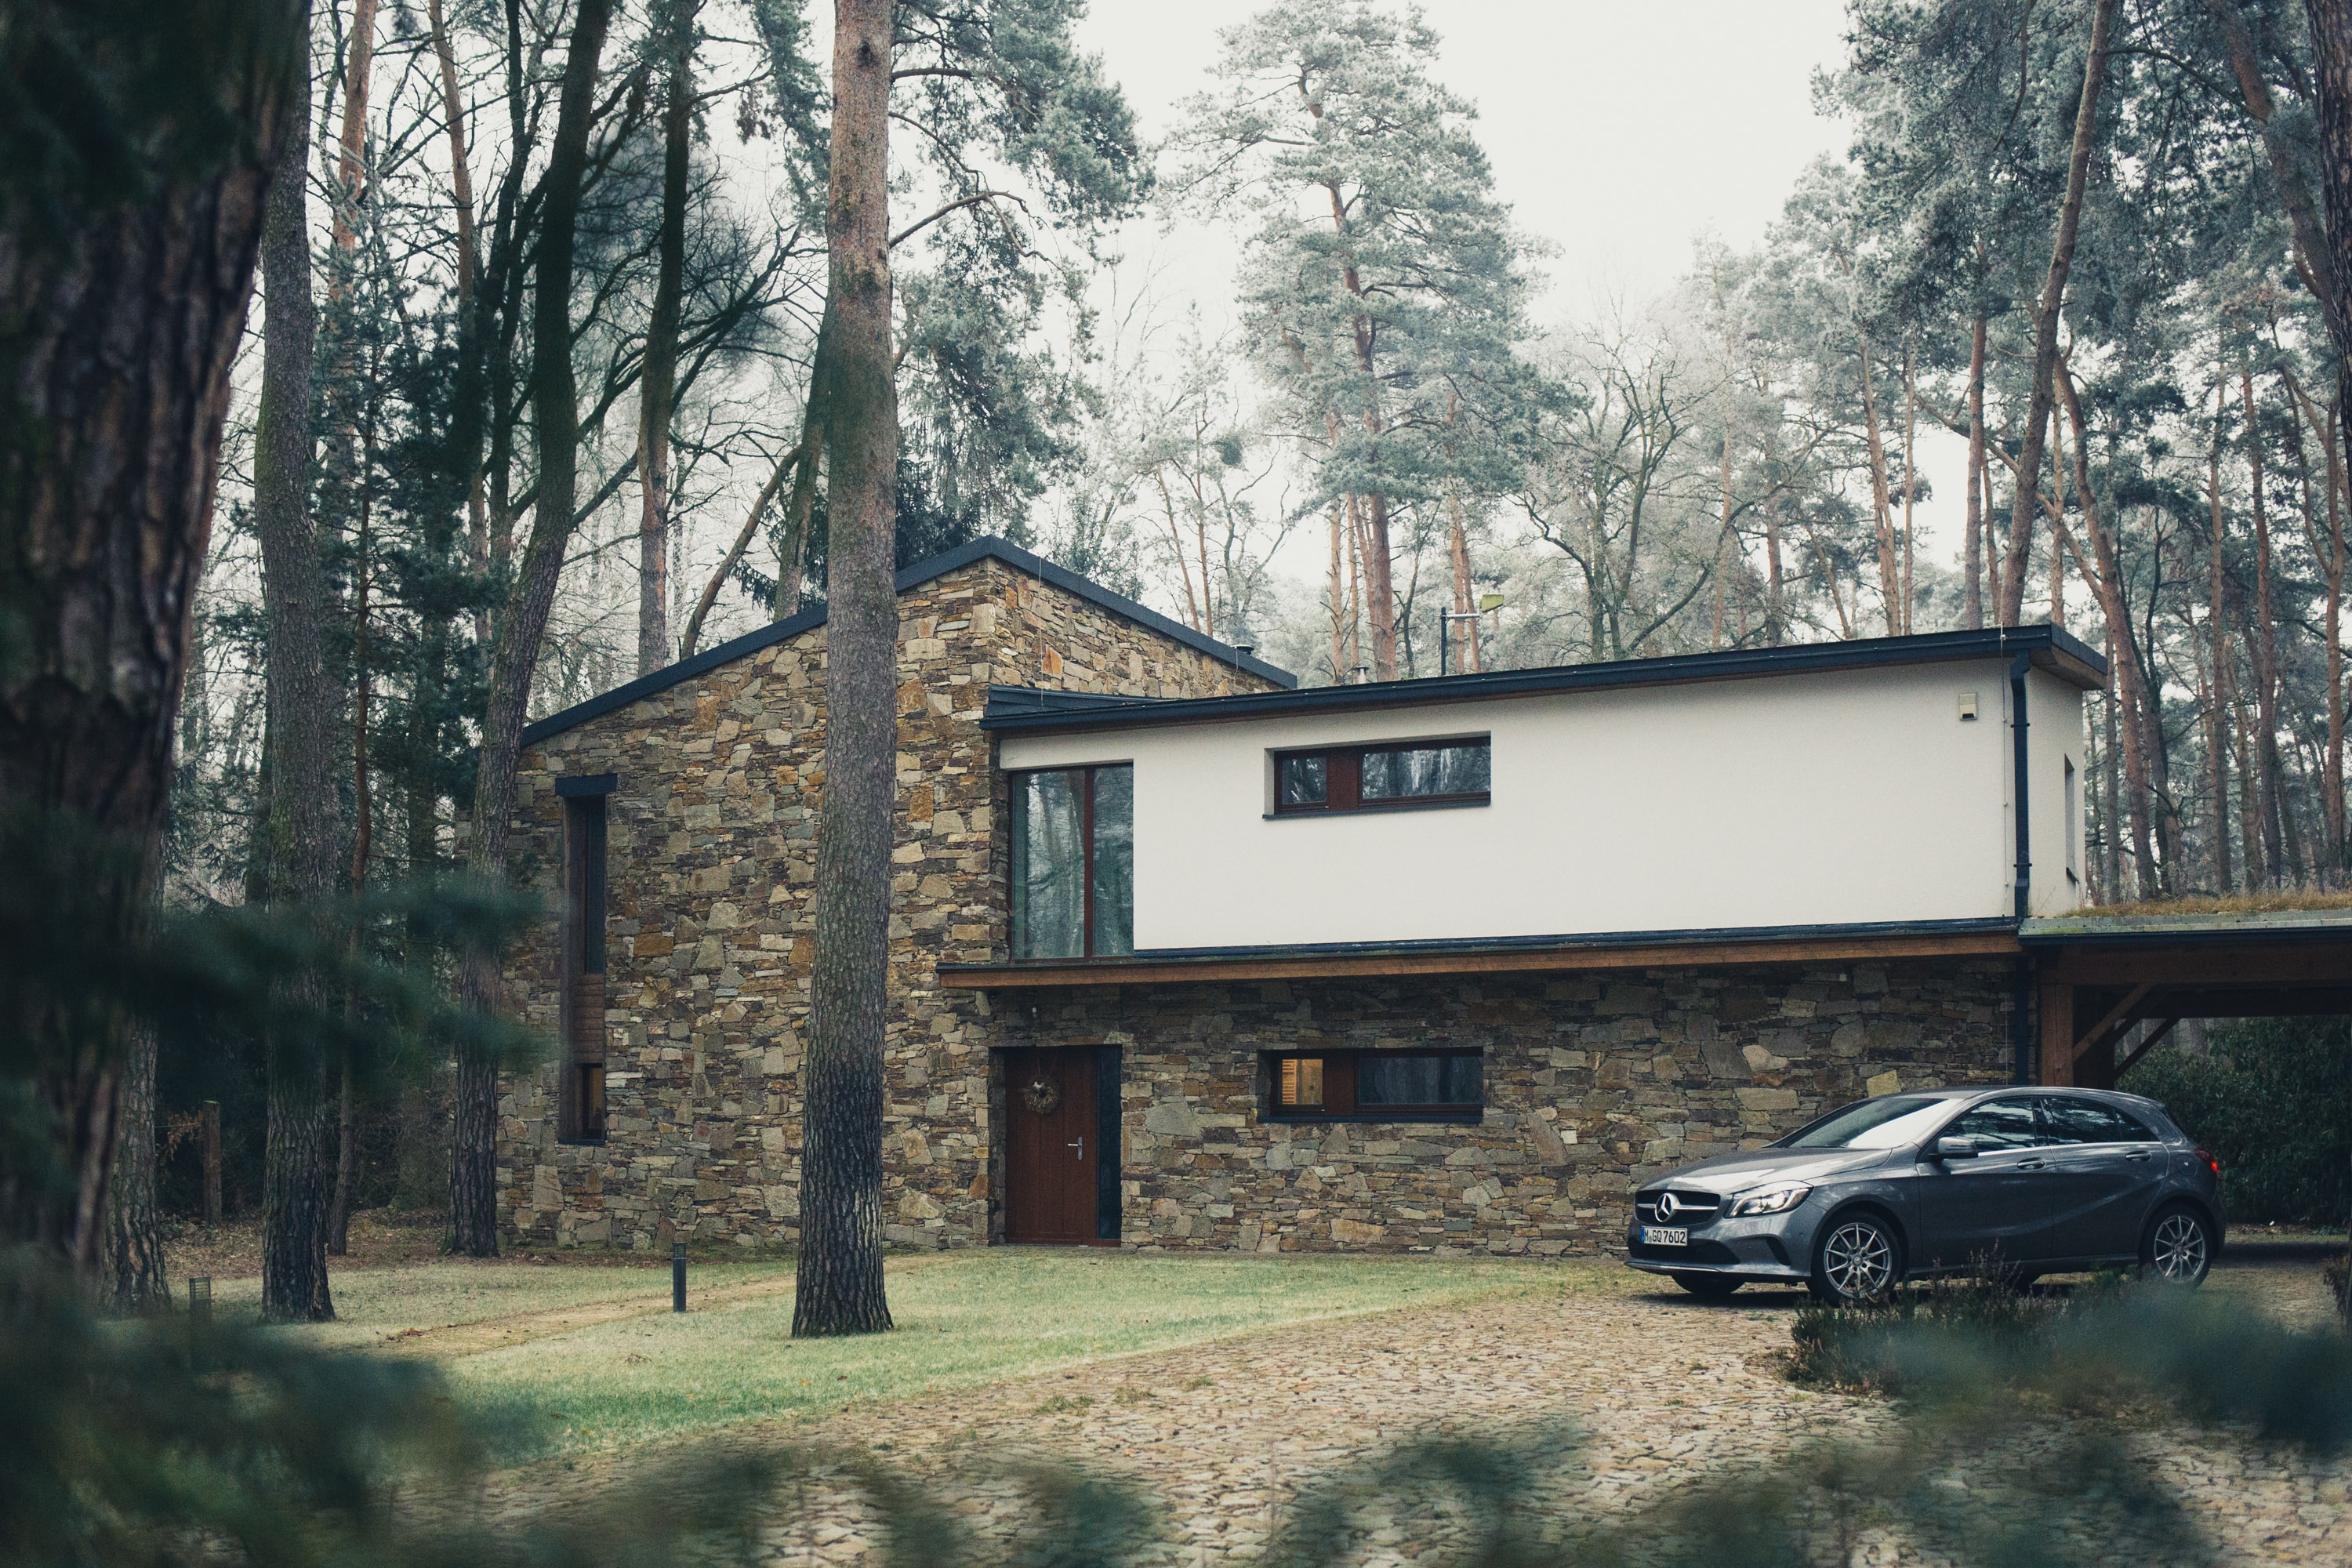 Modern brown and white house in the middle of pine tree forest with car parked in driveway